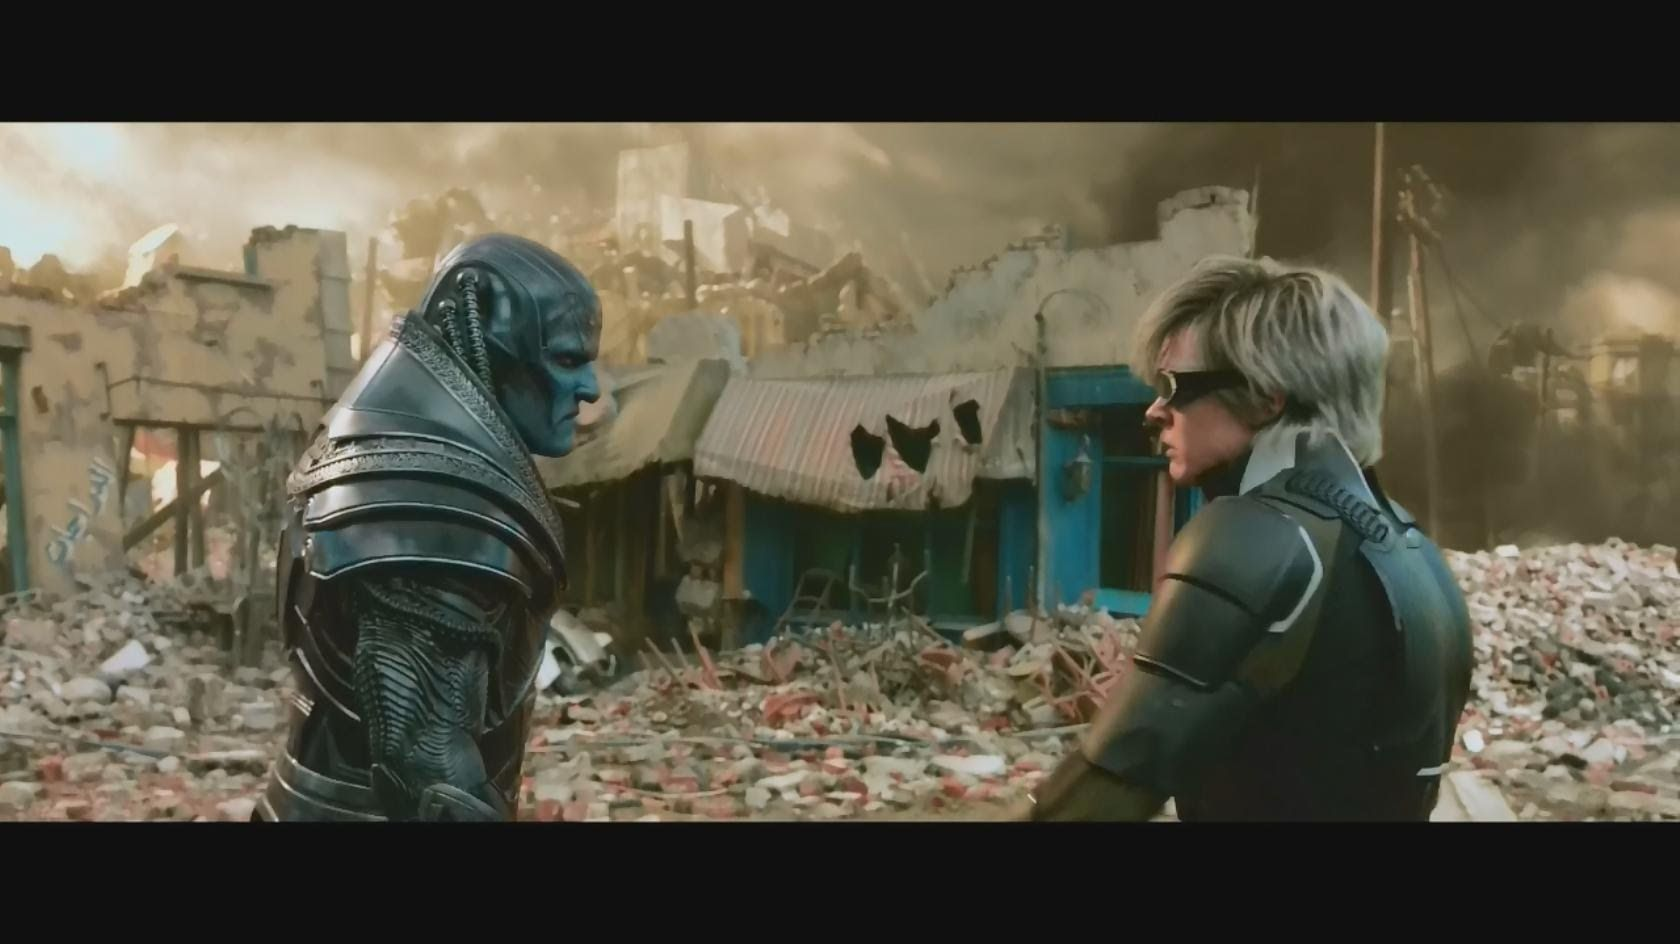 X Men Apocalypse Vs Quicksilver Fight Scene Blu Ray Hd X Men Apocalypse Scene Youtube